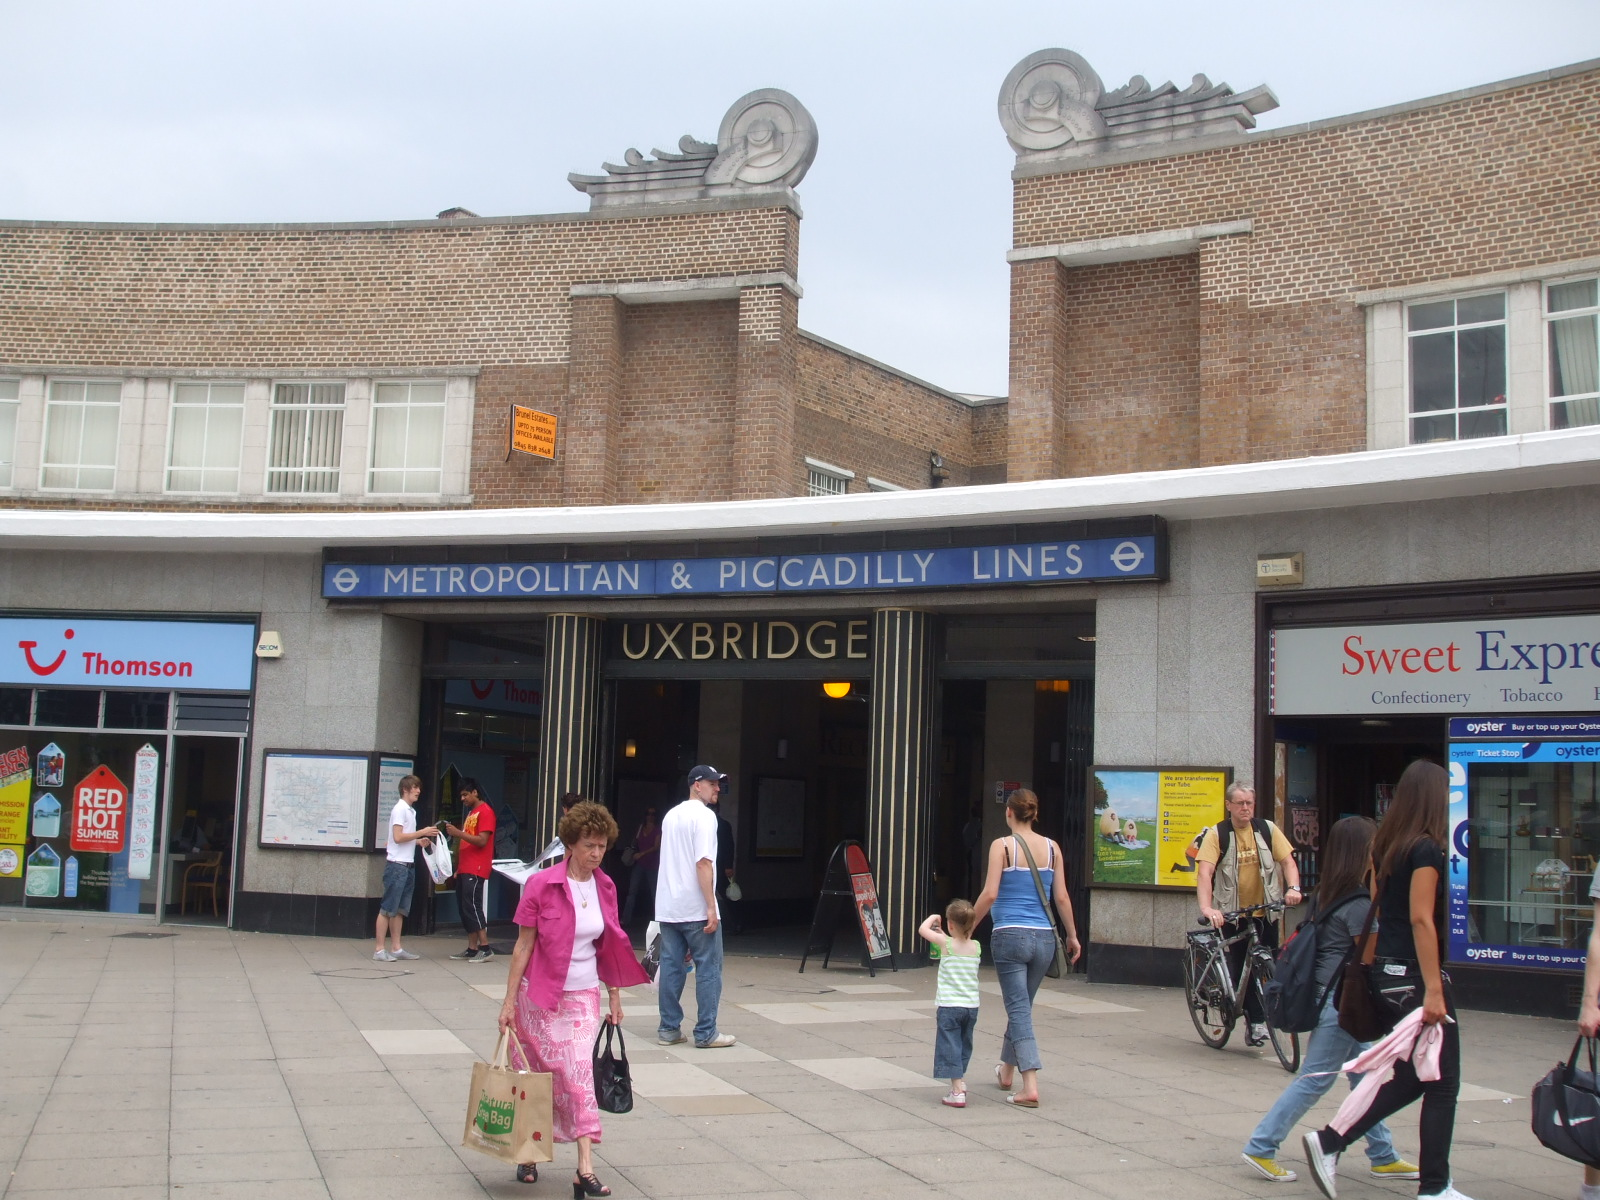 Uxbridge_station_entrance